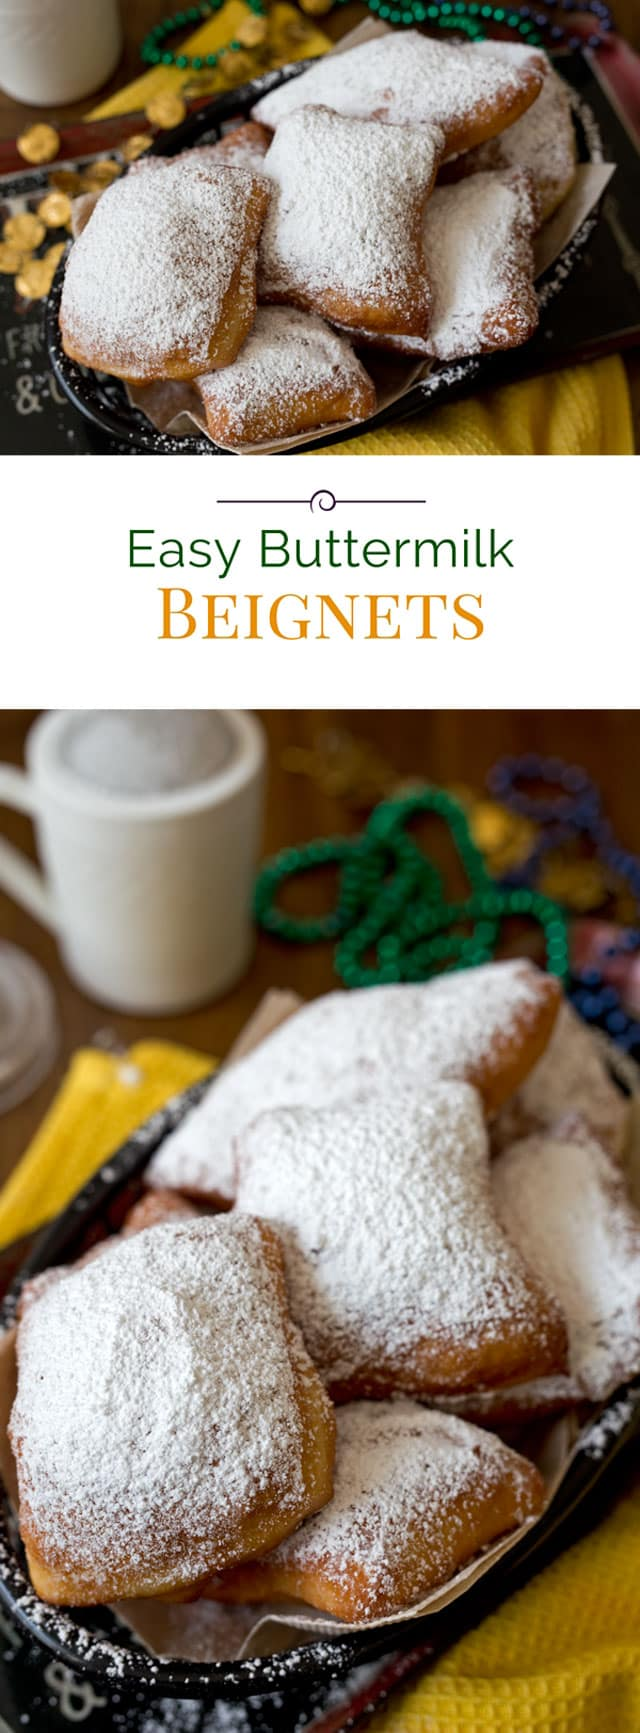 Easy-Beignets-Collage-Barbara-Bakes